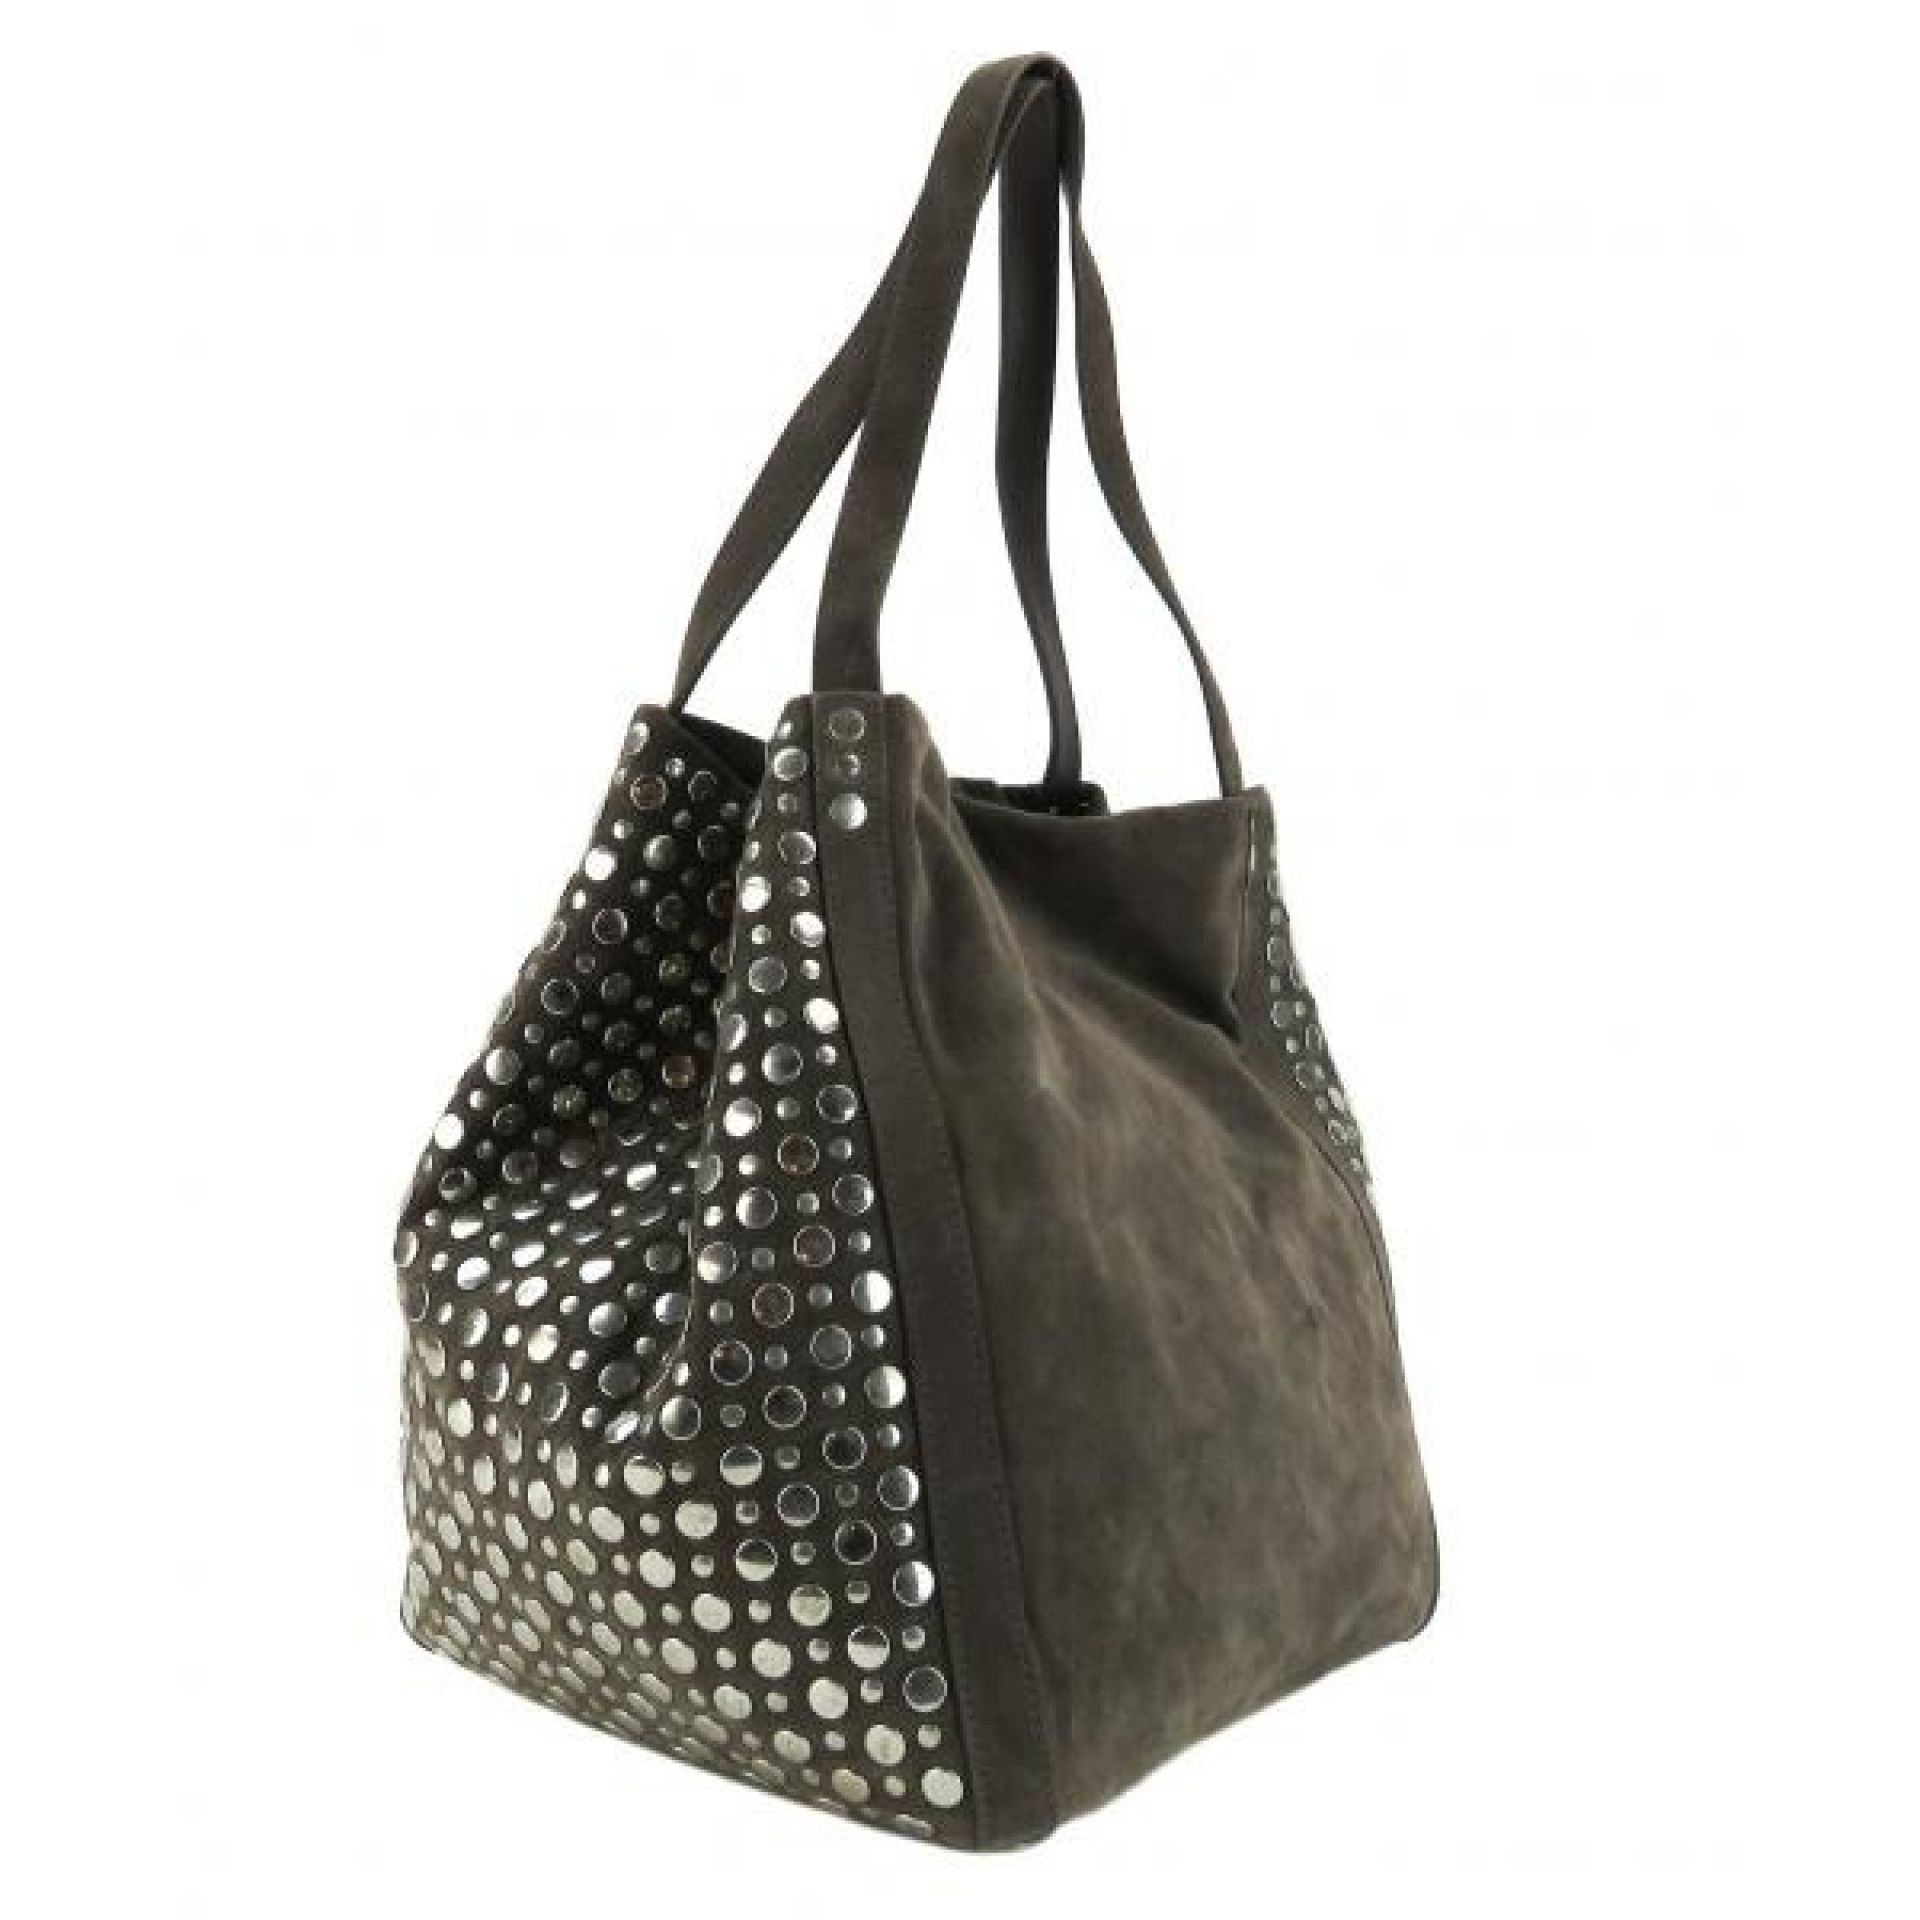 Stuart Weitzman Grey Suede Studded Shopper Tote Bag